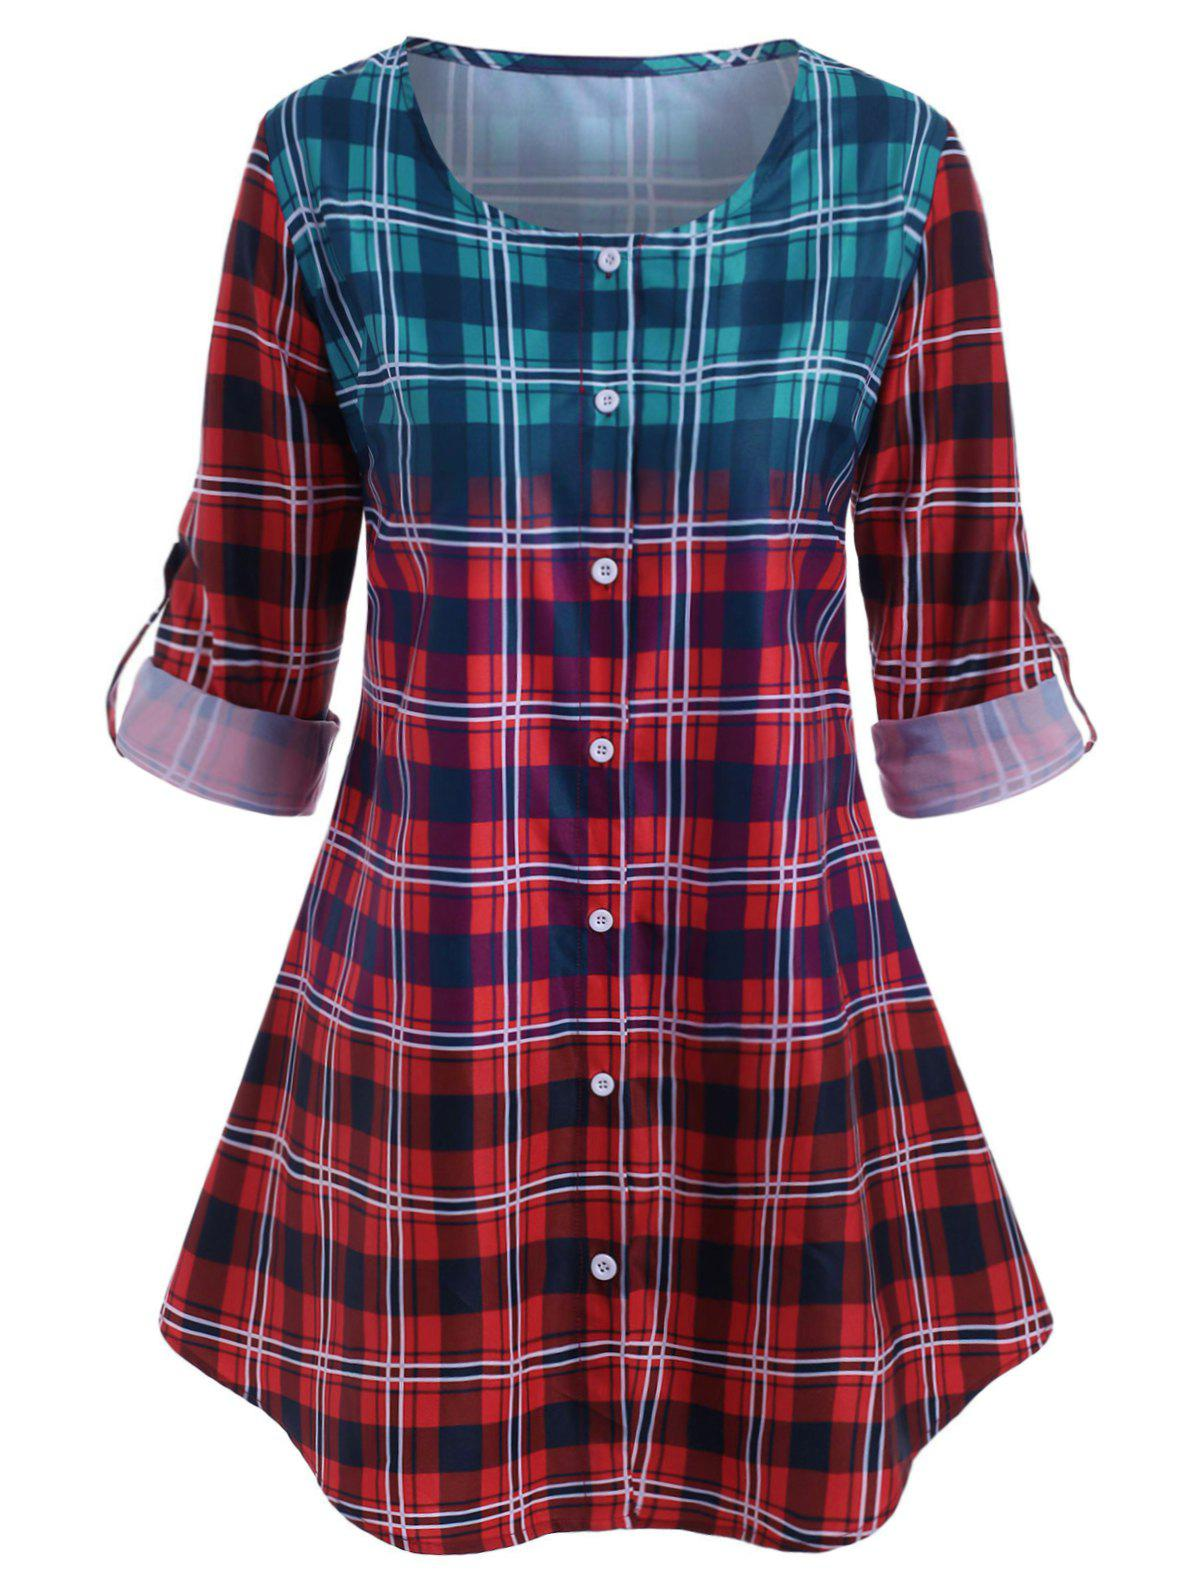 Plus Size Ombre Color Plaid Roll Up Sleeve Blouse - RED L